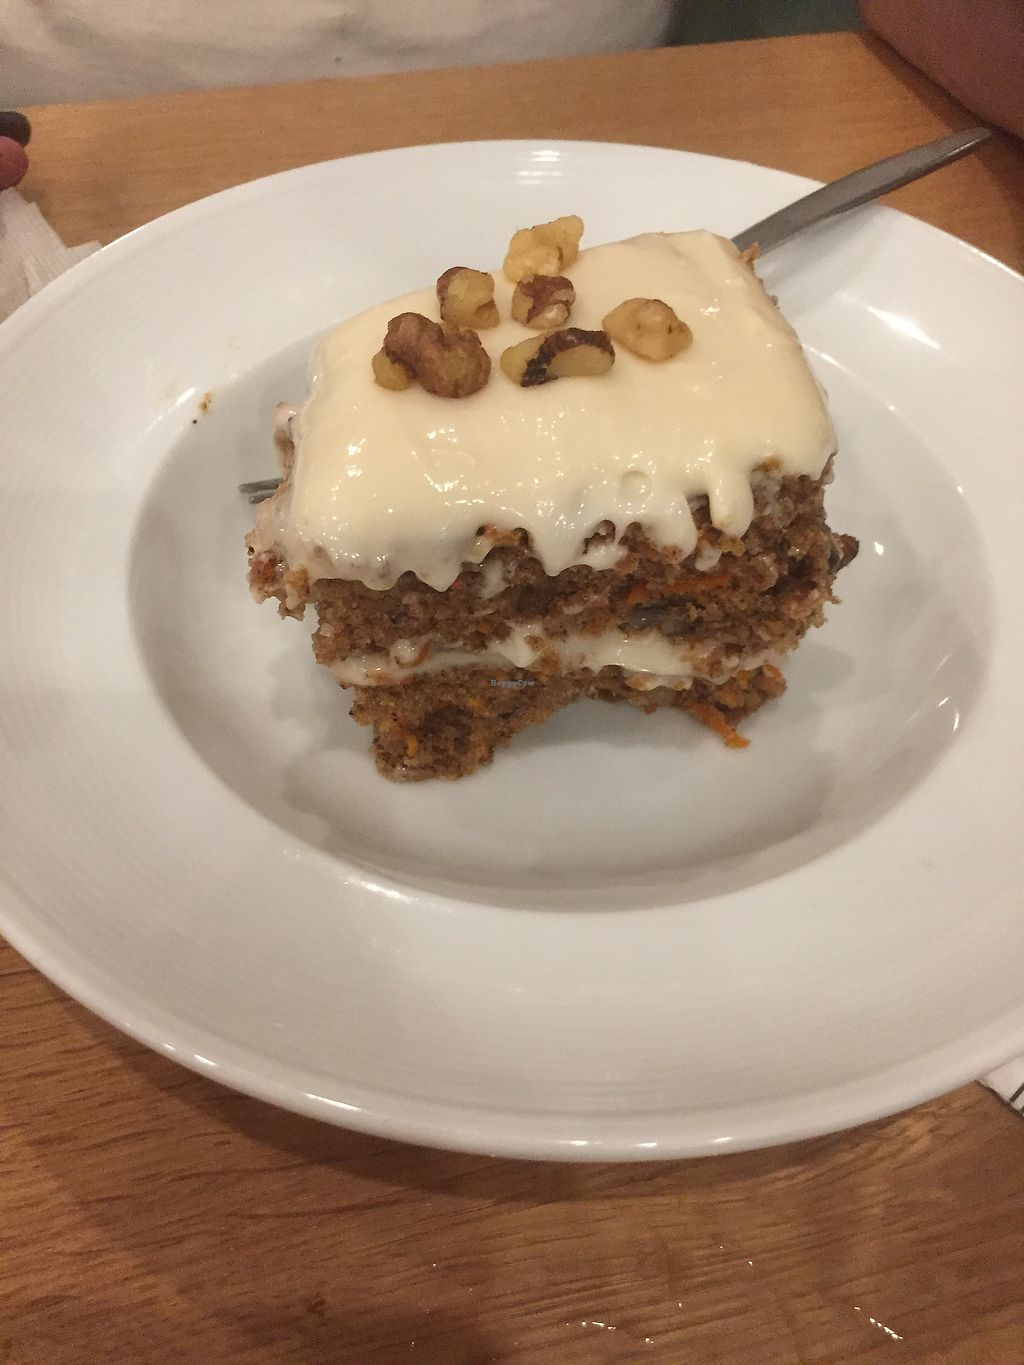 """Photo of J Selby's  by <a href=""""/members/profile/vegannomad2"""">vegannomad2</a> <br/>carrot cake - moist, not too sweet, walnuts add a nice touch <br/> July 23, 2017  - <a href='/contact/abuse/image/90026/283455'>Report</a>"""